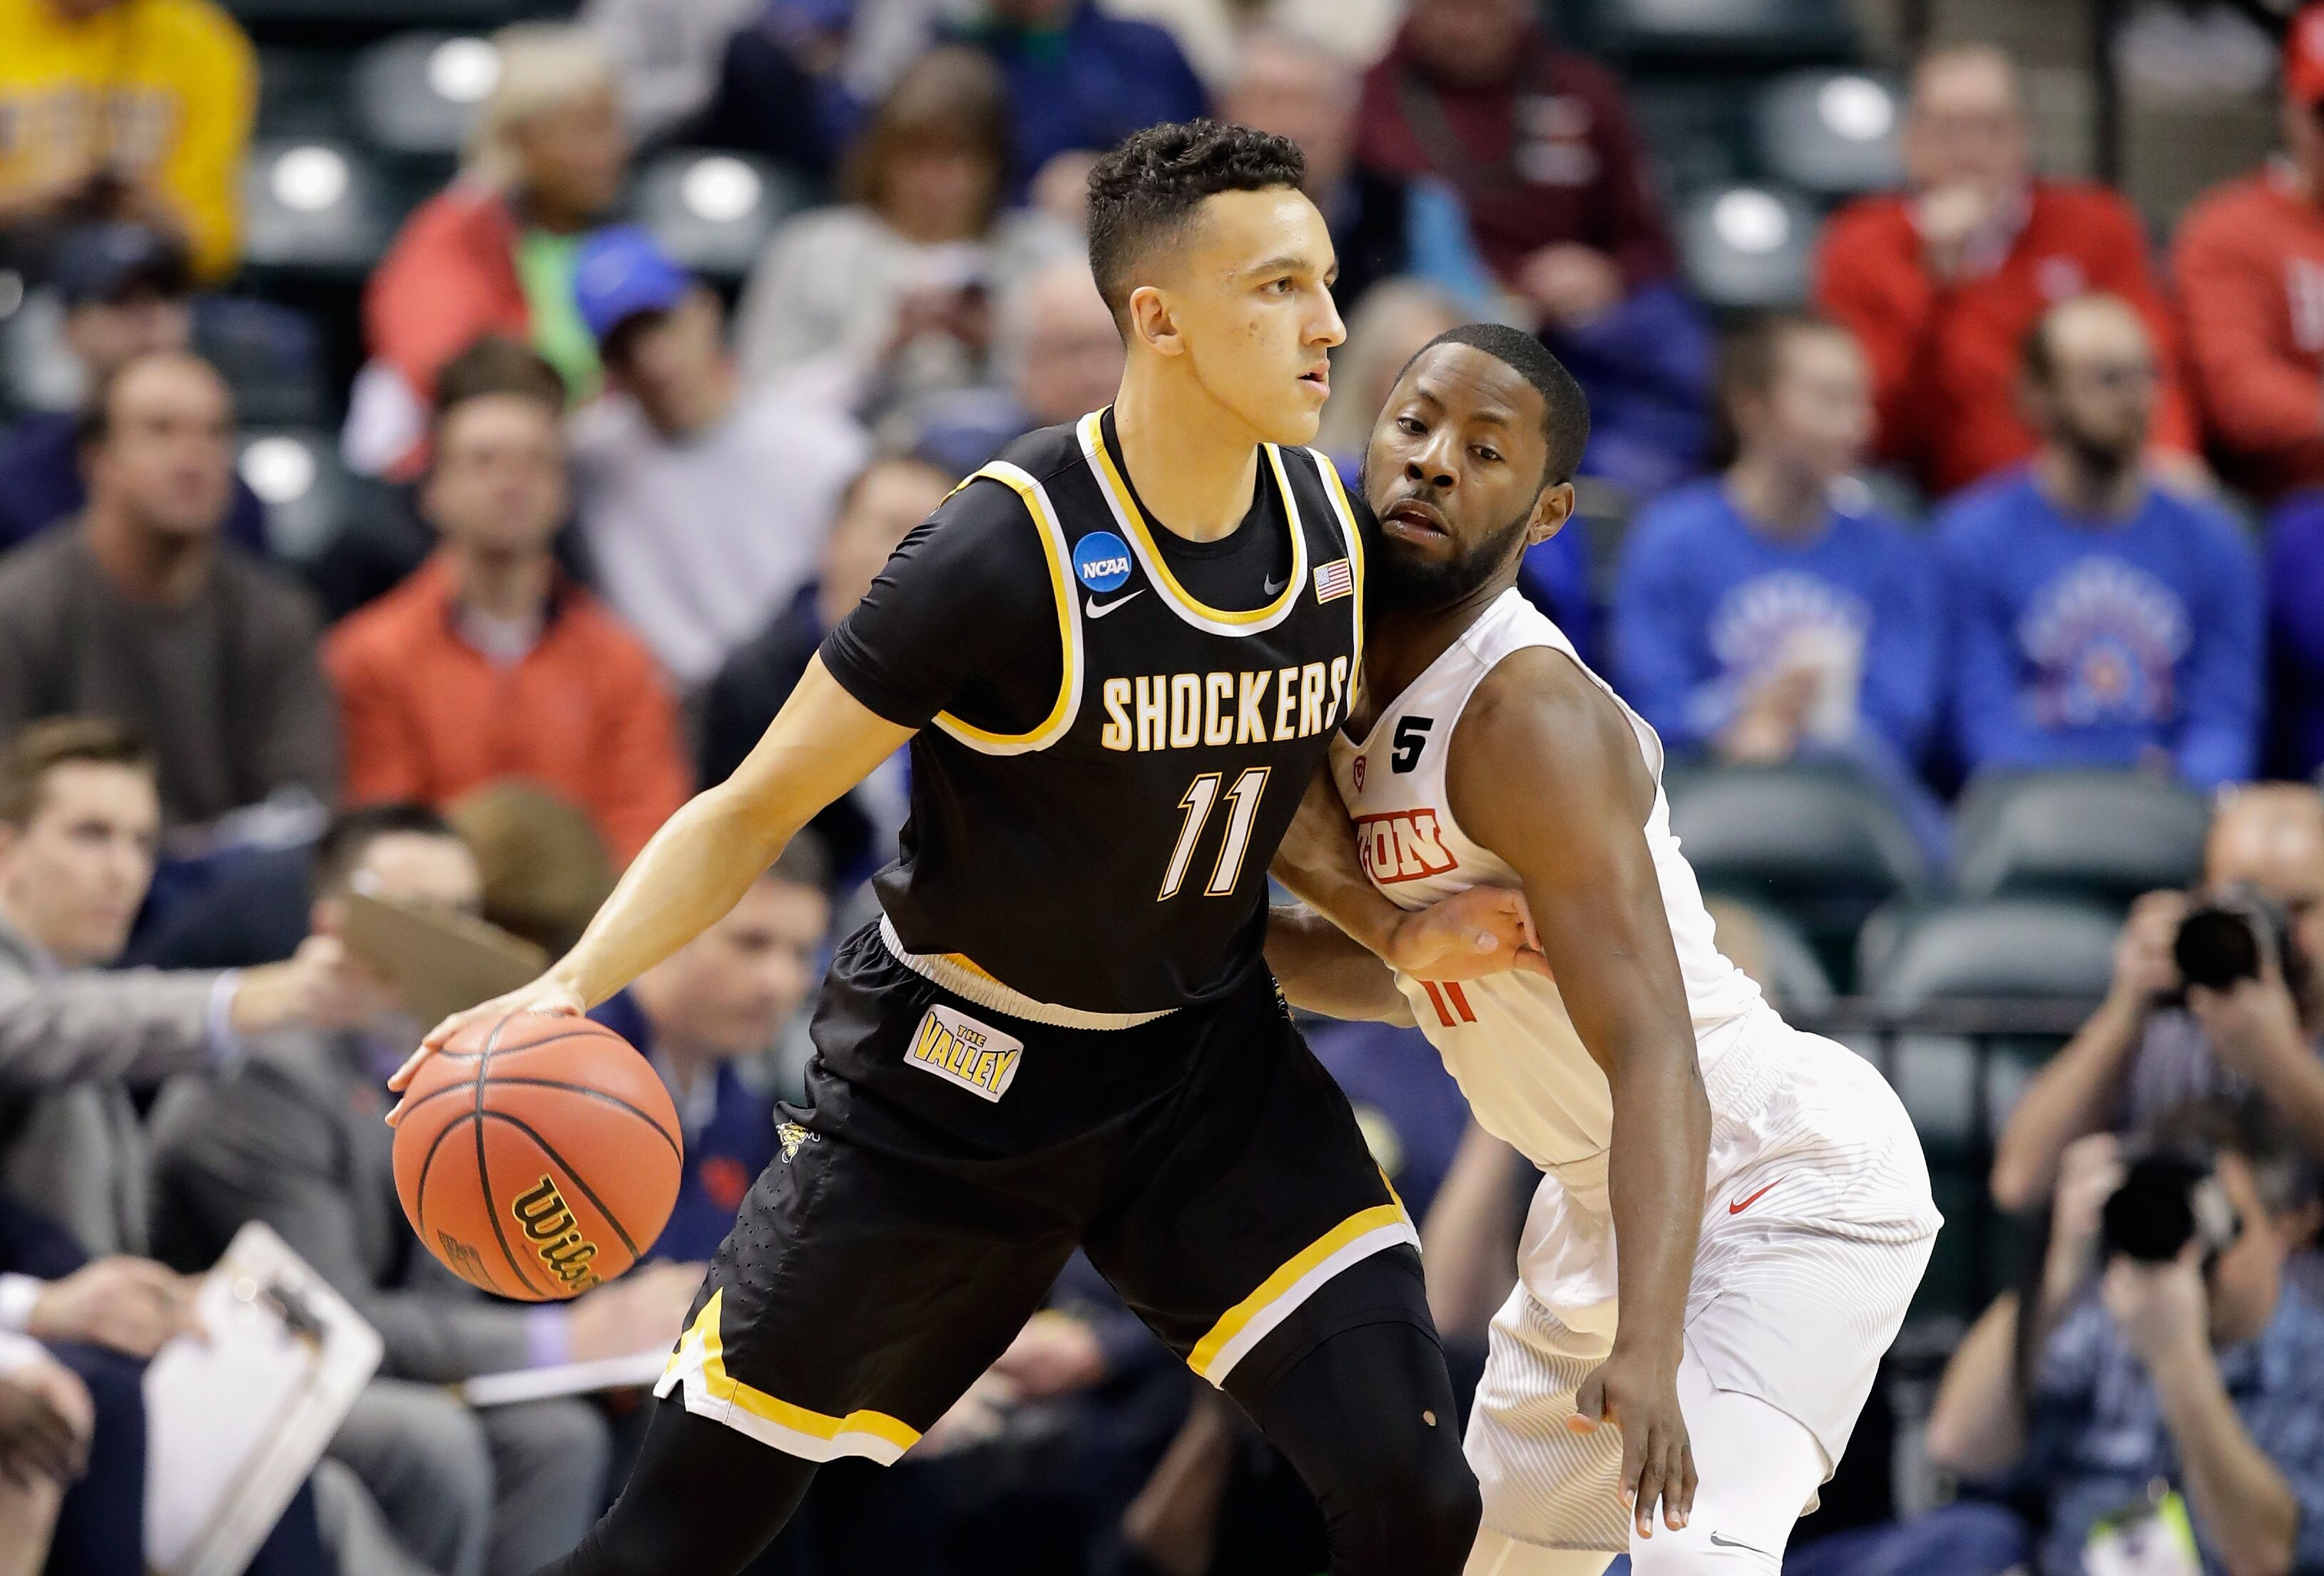 Baylor Vs Wichita State College Basketball Game Preview Tv Schedule